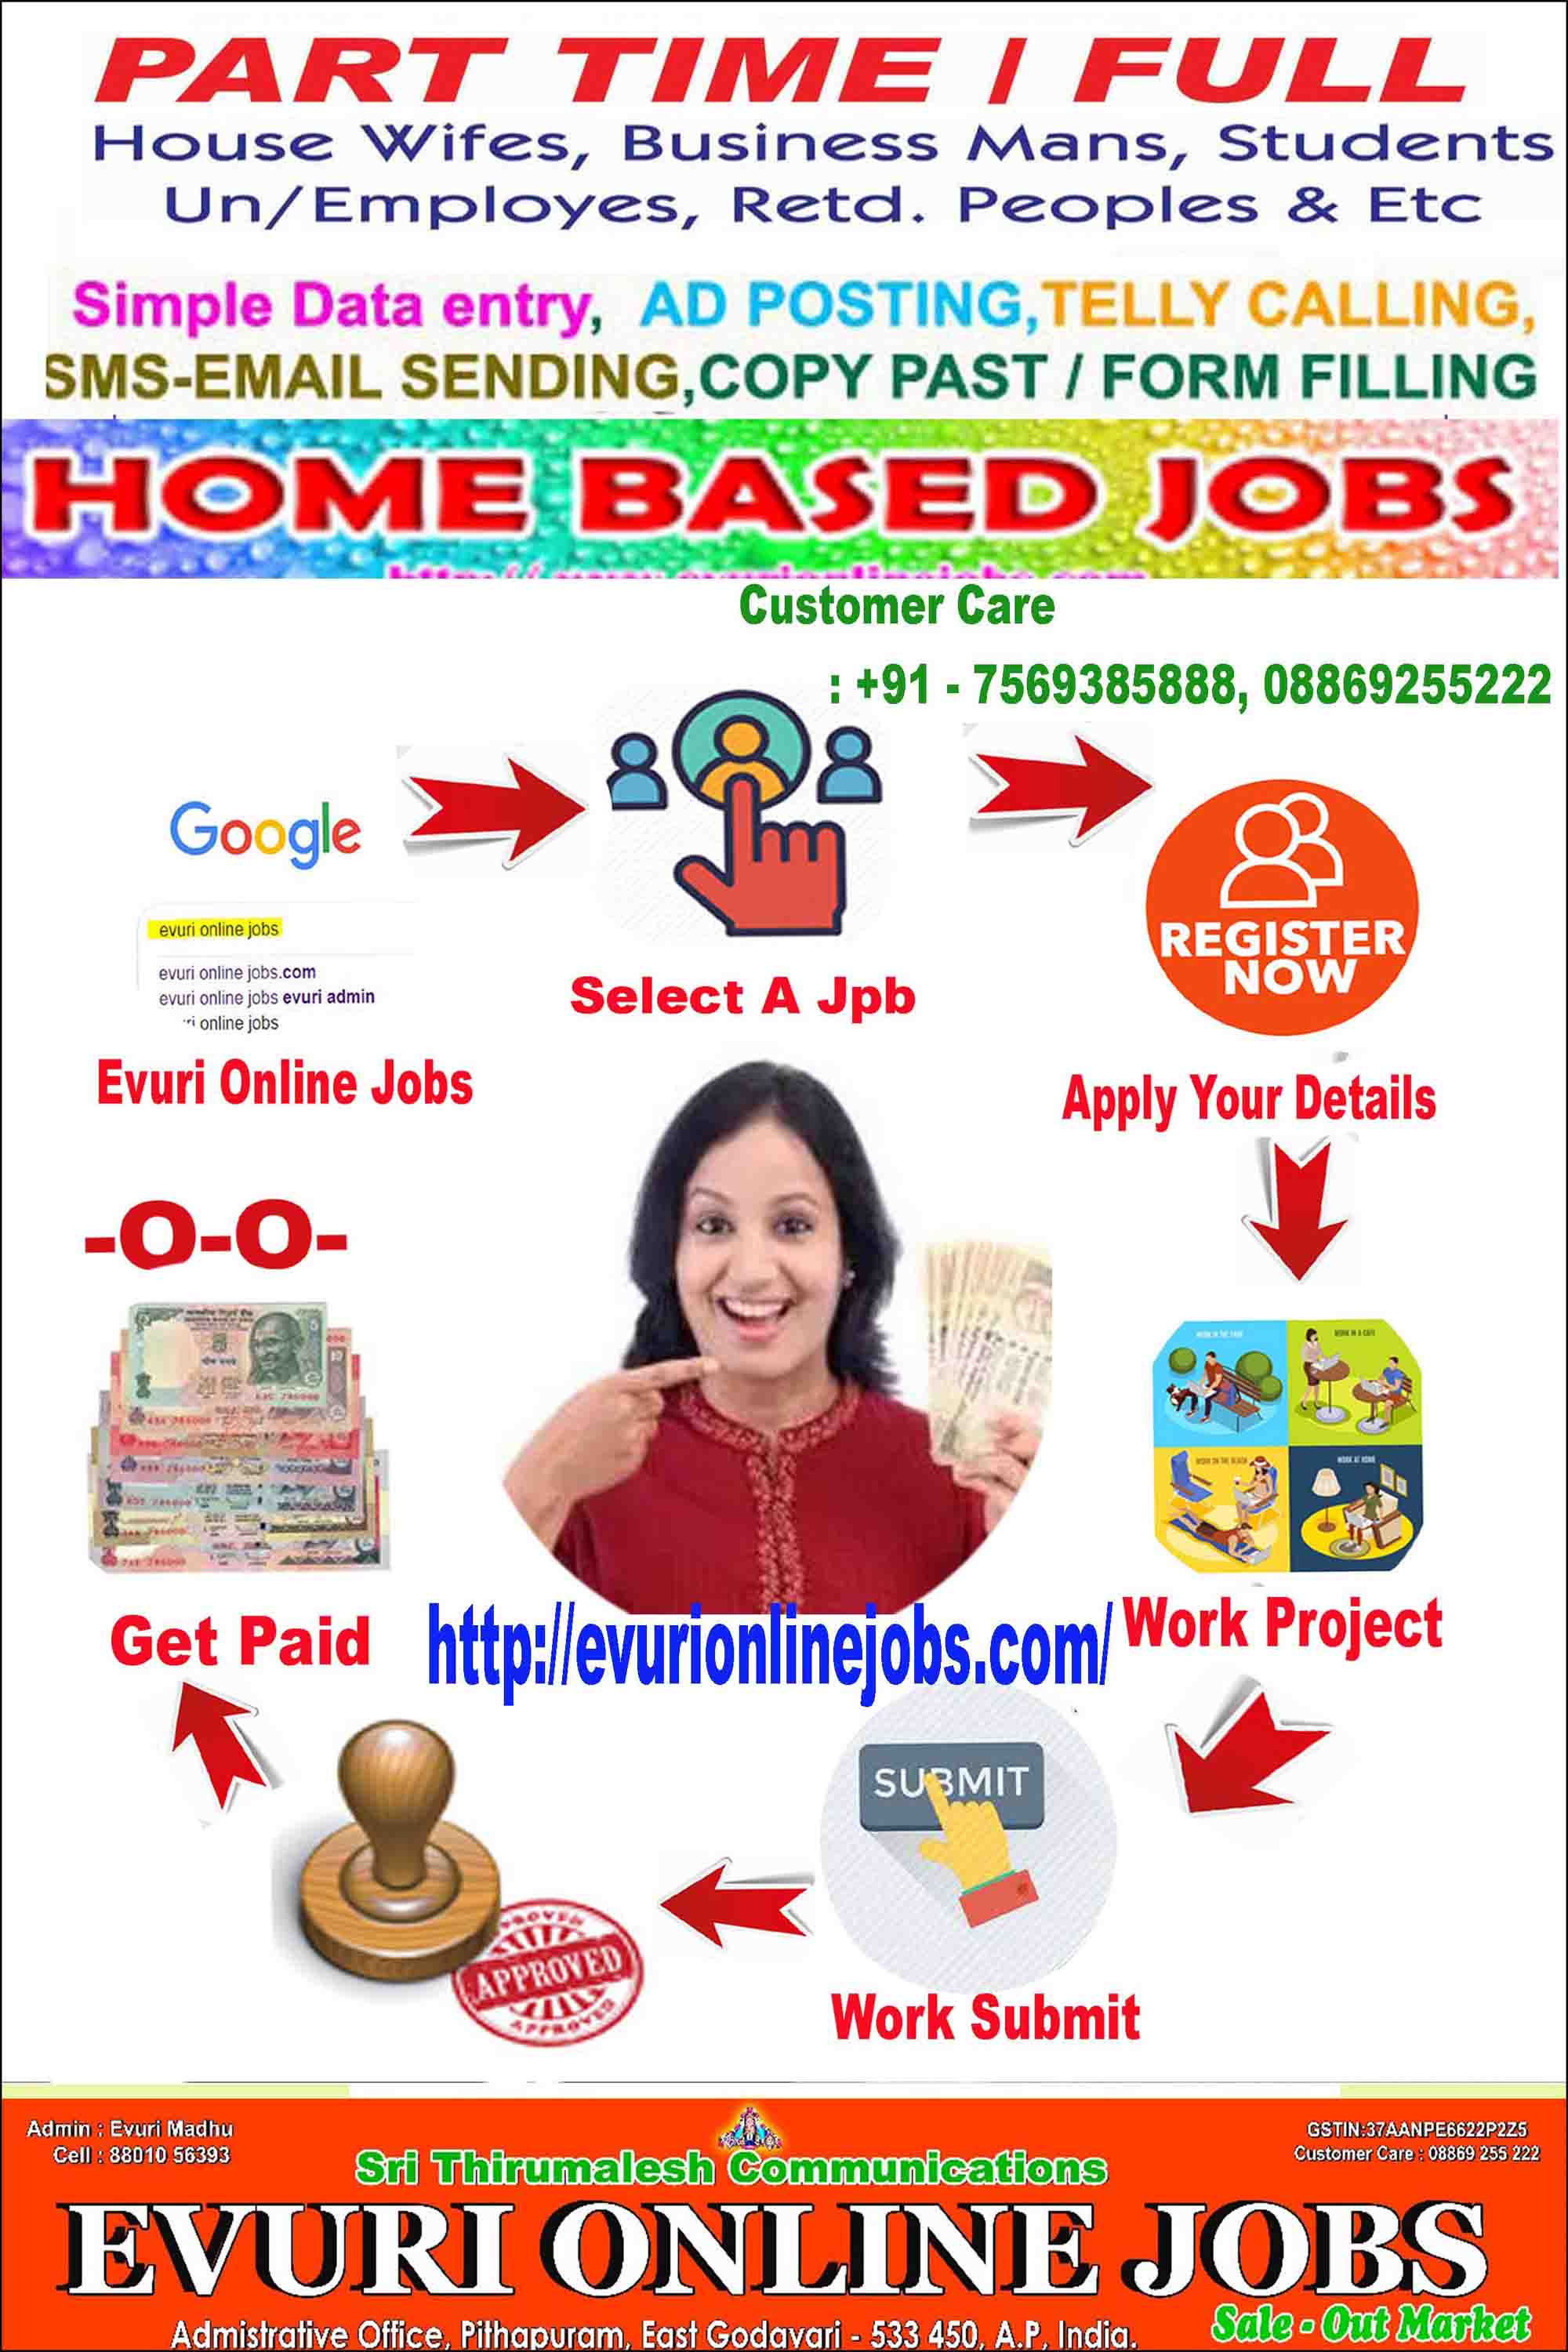 Online Jobs,Part time Jobs,Home Based Jobs for House wives, Retired  persons, College students and who need to earn extraPart Time Home Based Data Entry Typing Jobs